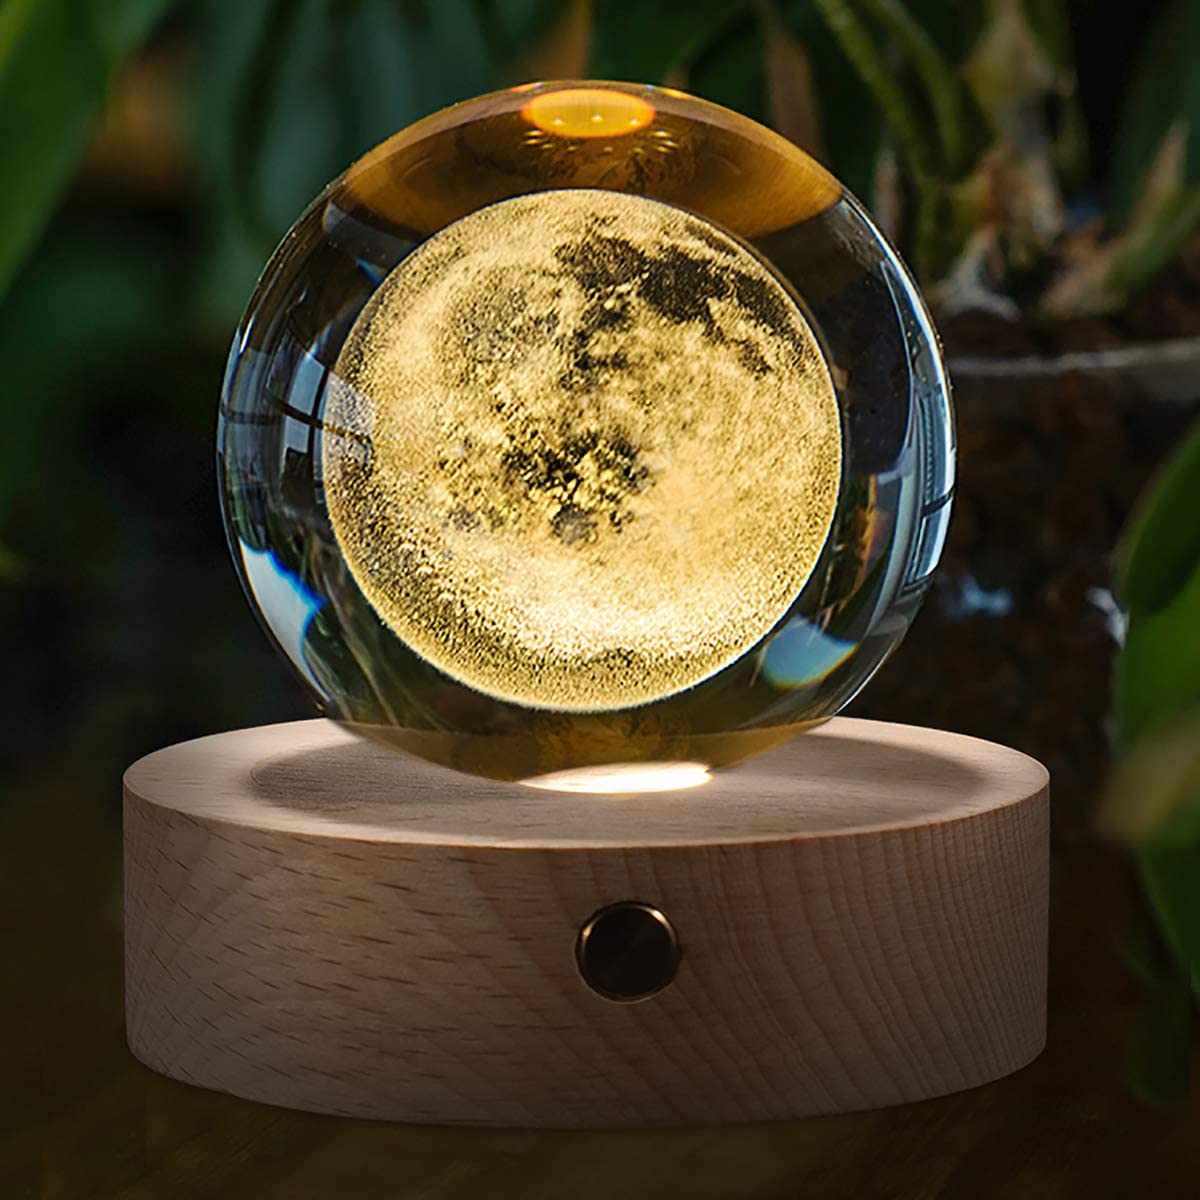 Moon Crystal Ball Stand(3.15inch), 3D Crystal Ball with Led Light, K9 Clear Crystal Ball for Home Decoration